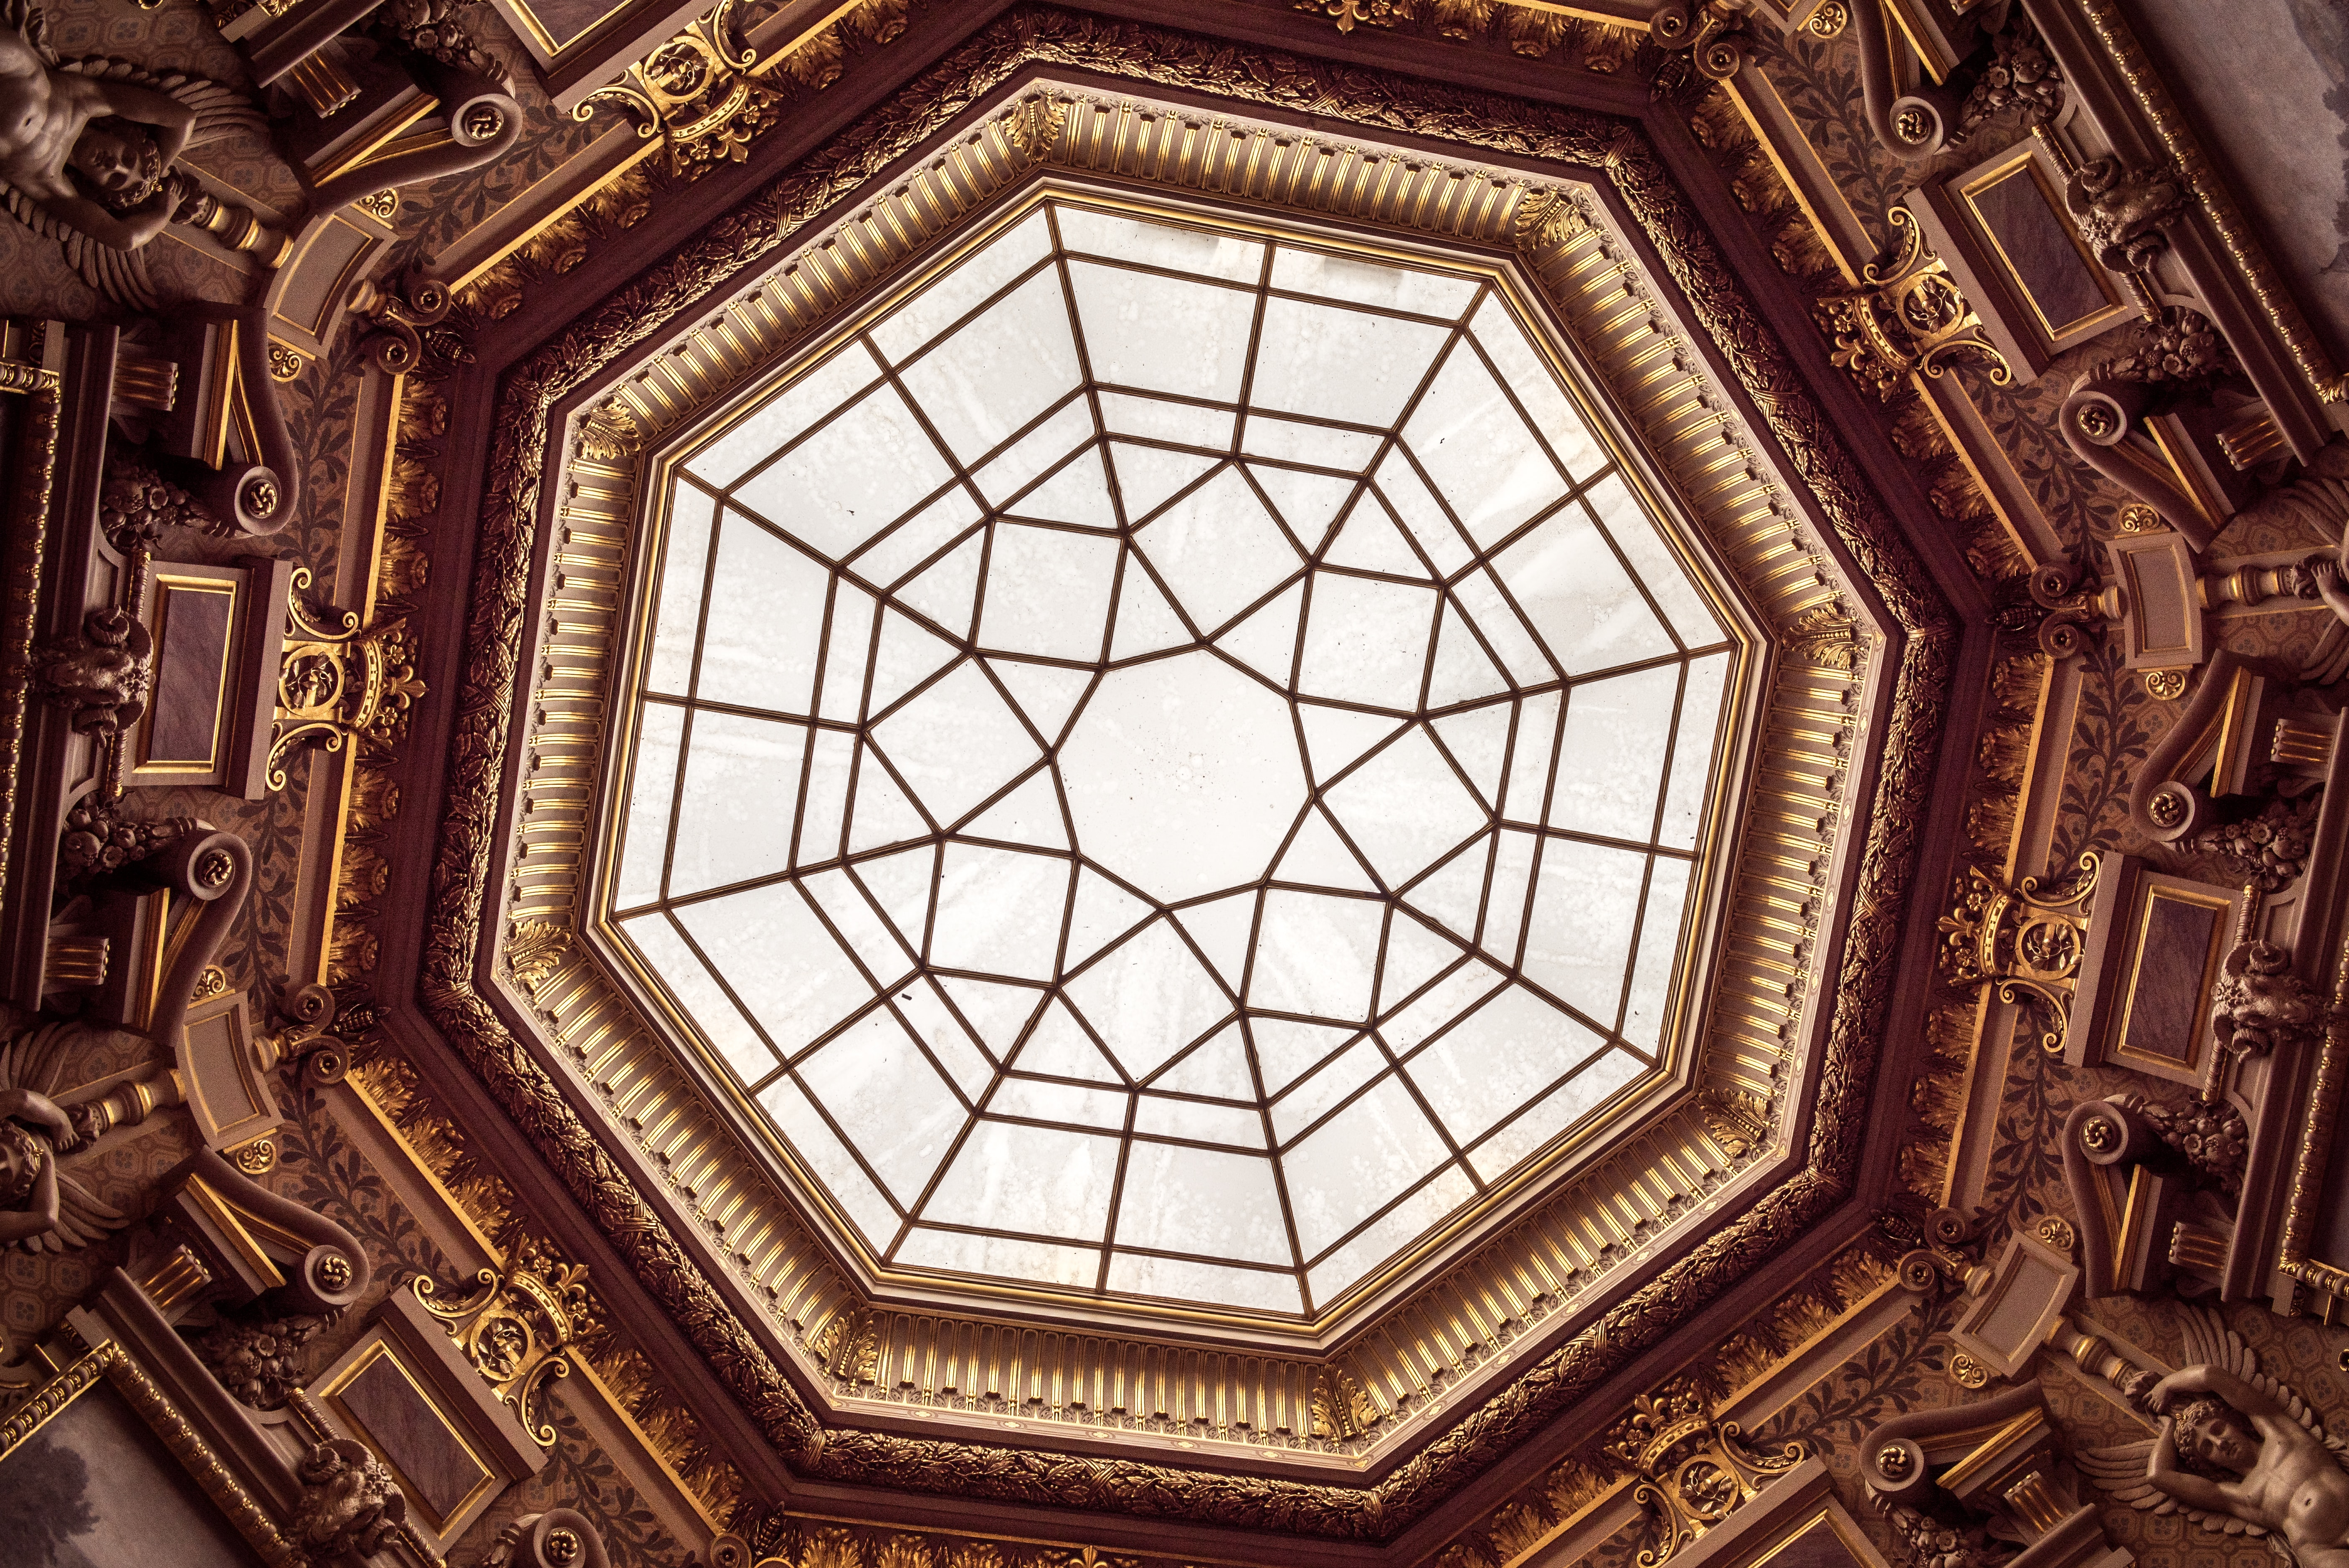 View of a dome in a richly adorned building